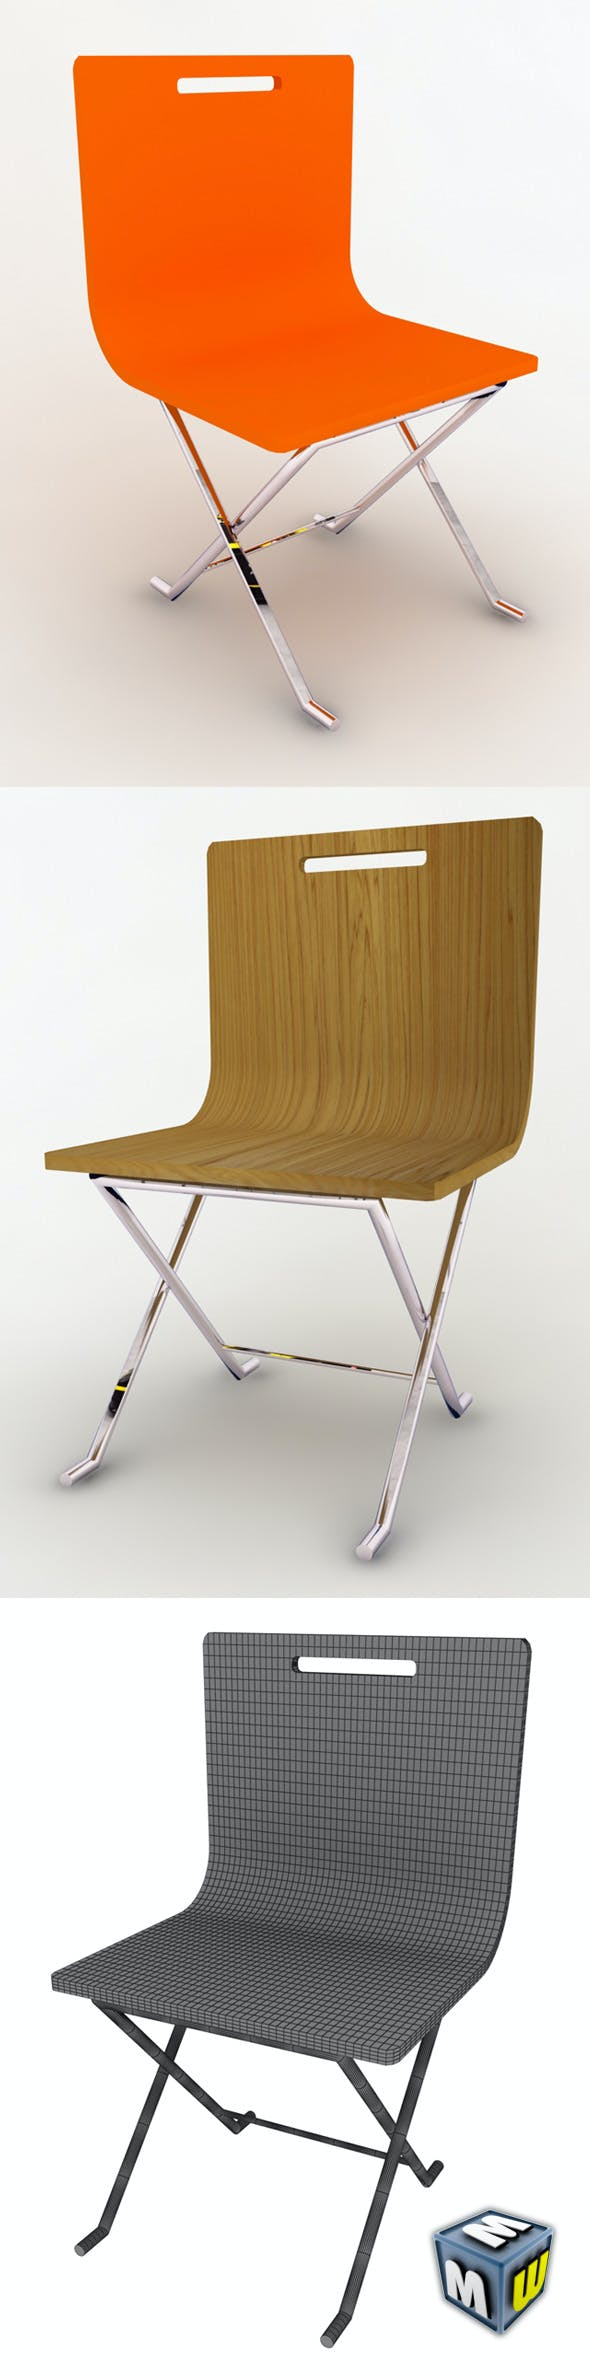 Chair MAX 2008 - 3DOcean Item for Sale